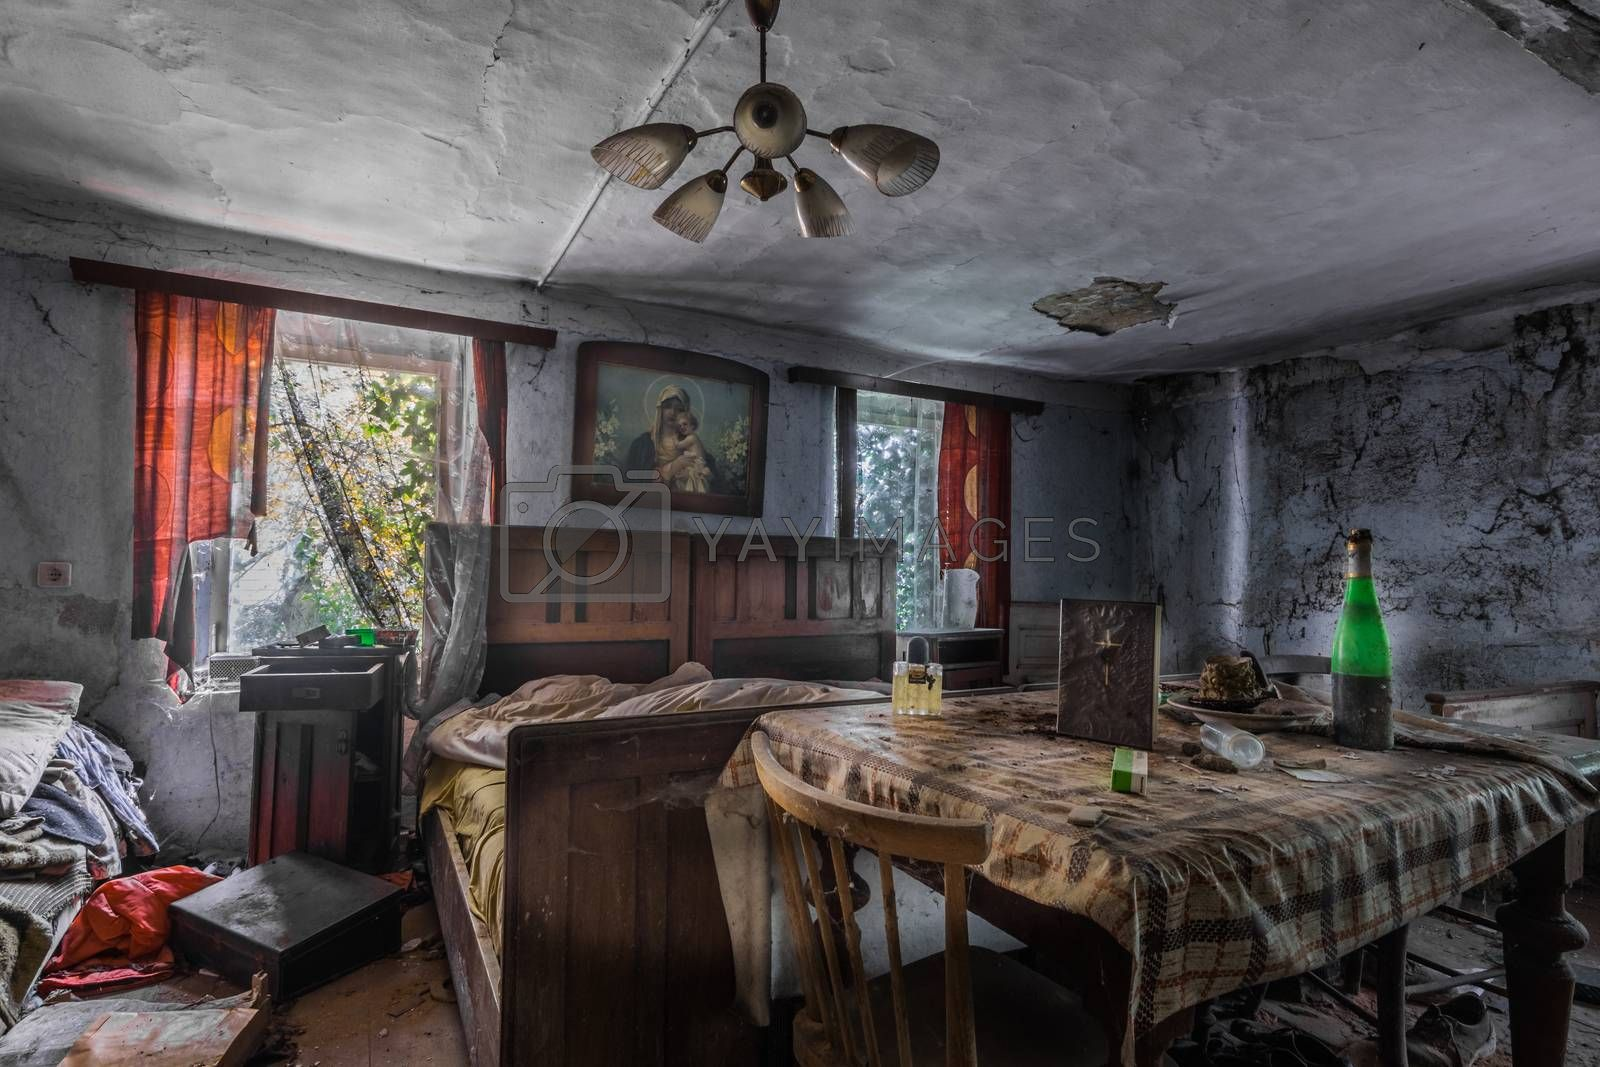 furnished abandoned room in an old house